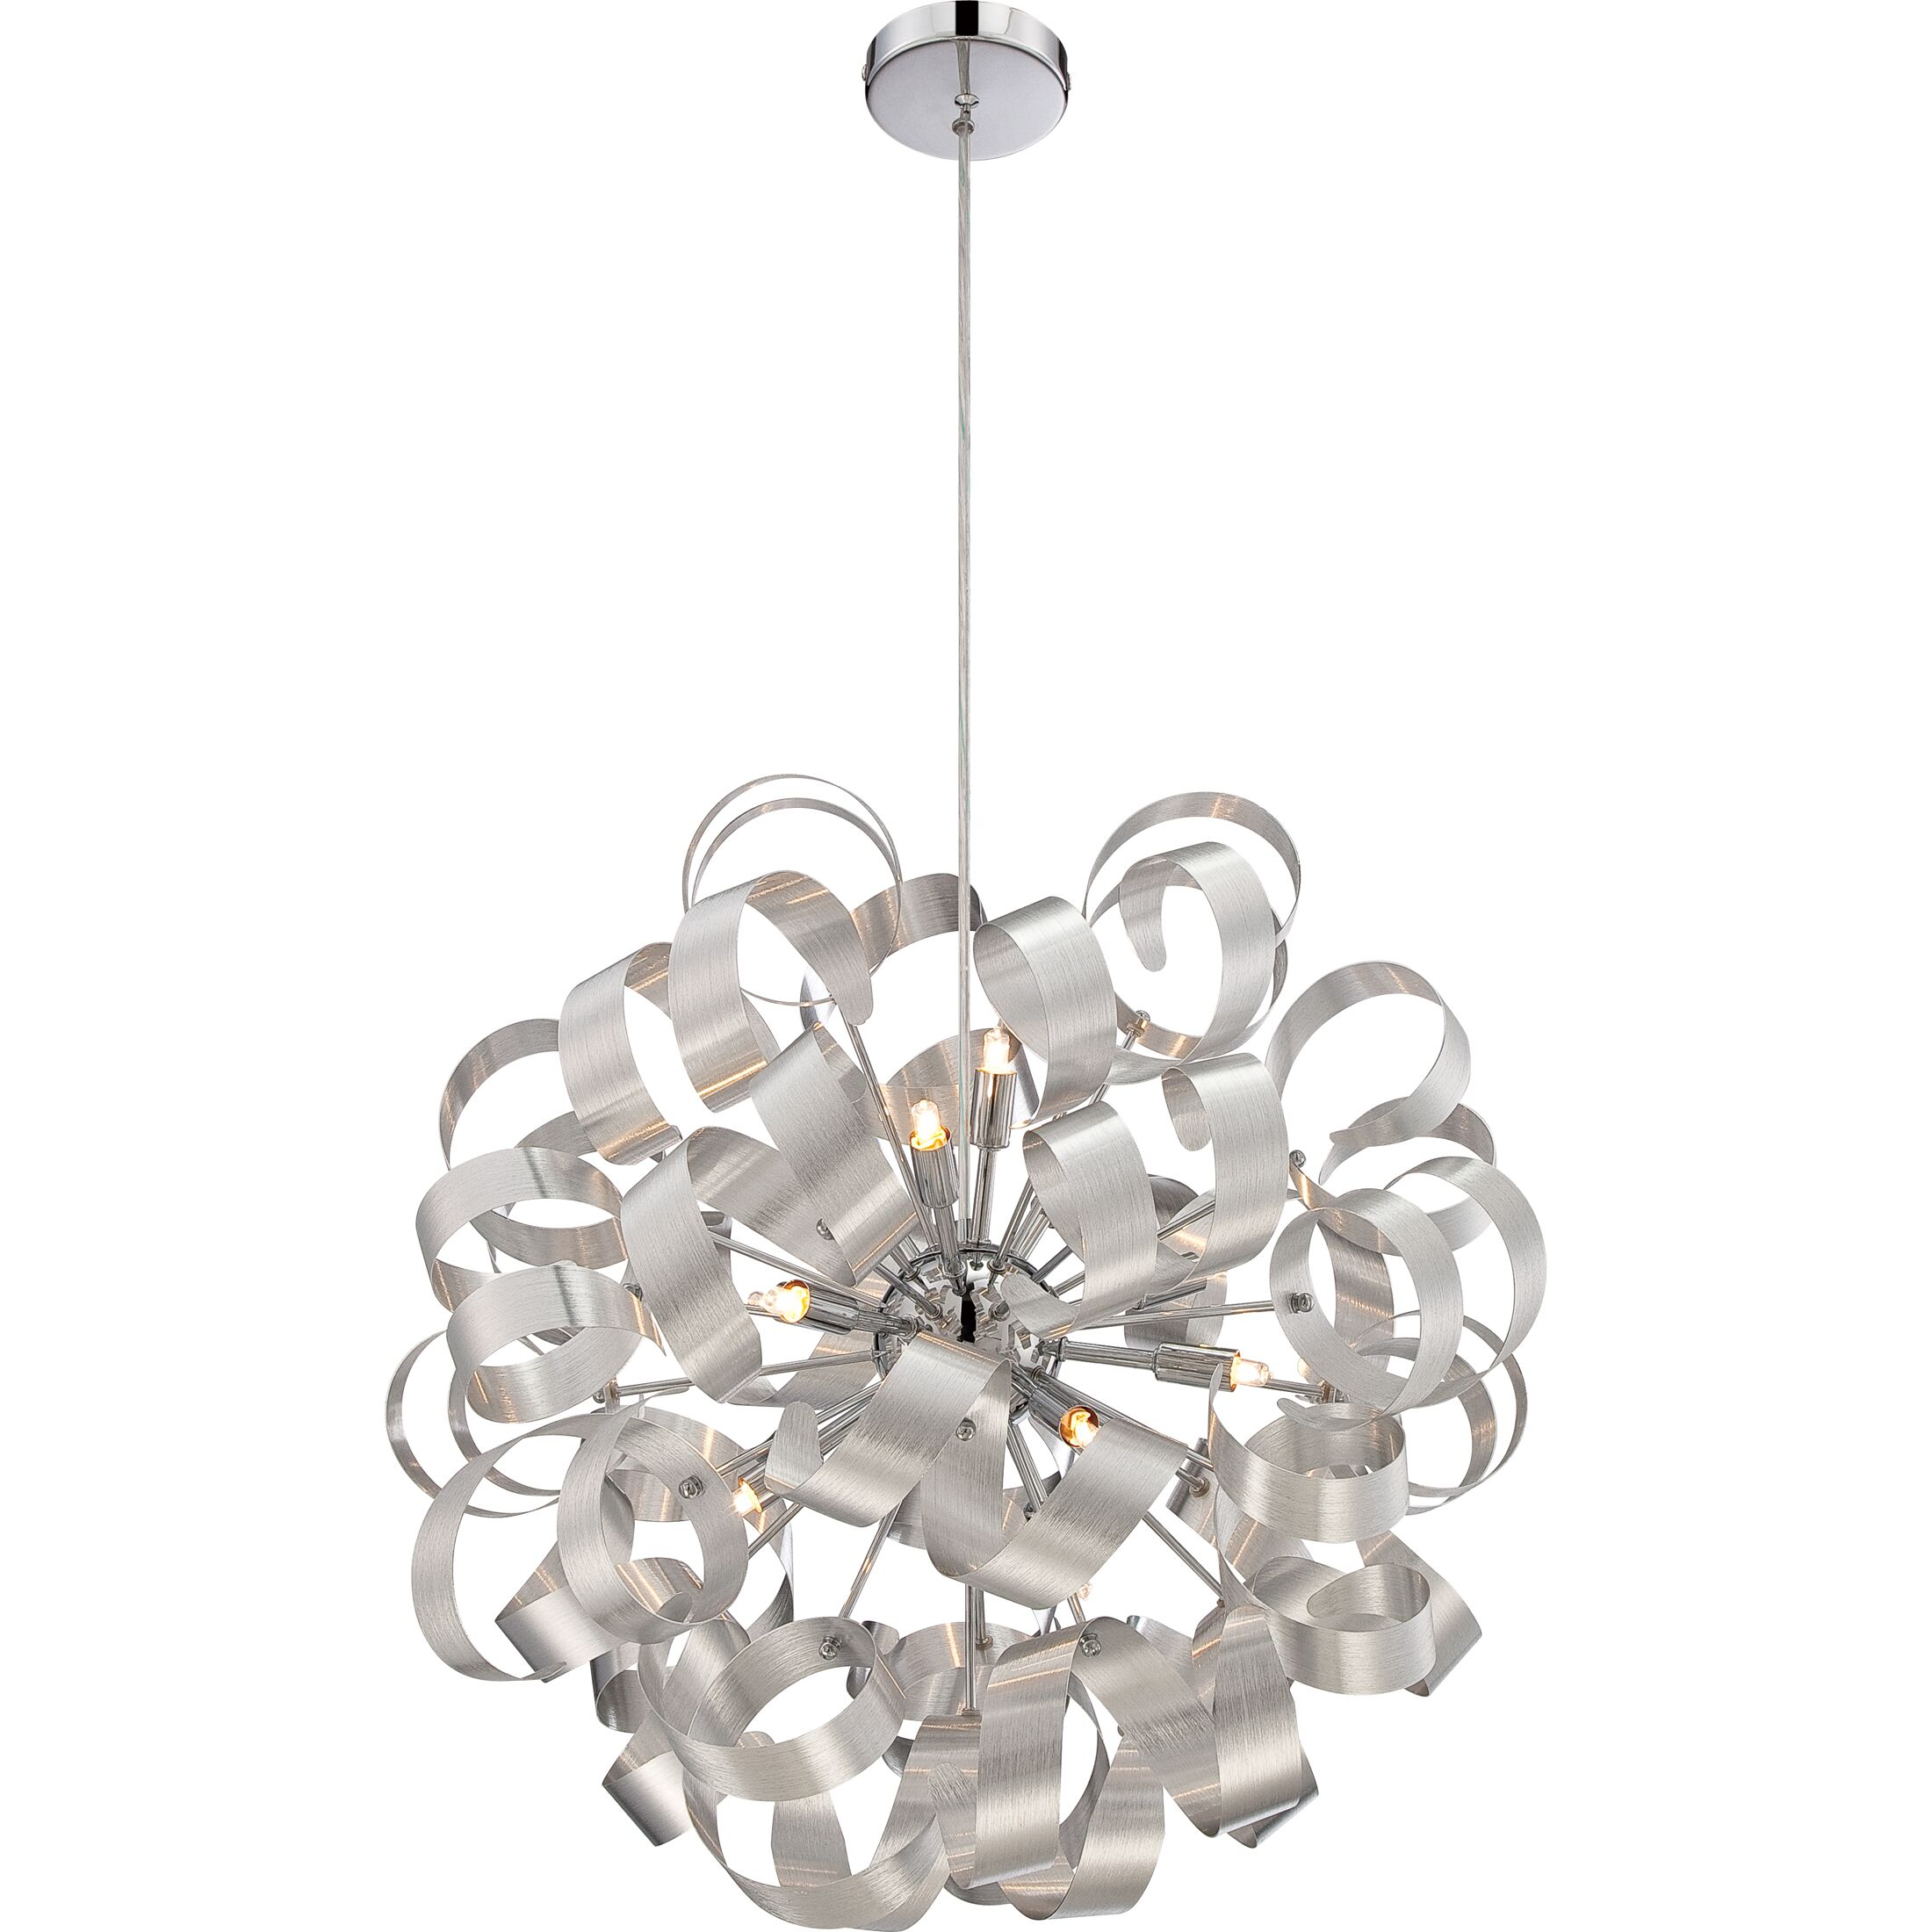 Jaelyn 5-Light Sputnik Chandelier Finish: Millenia, Size: 23